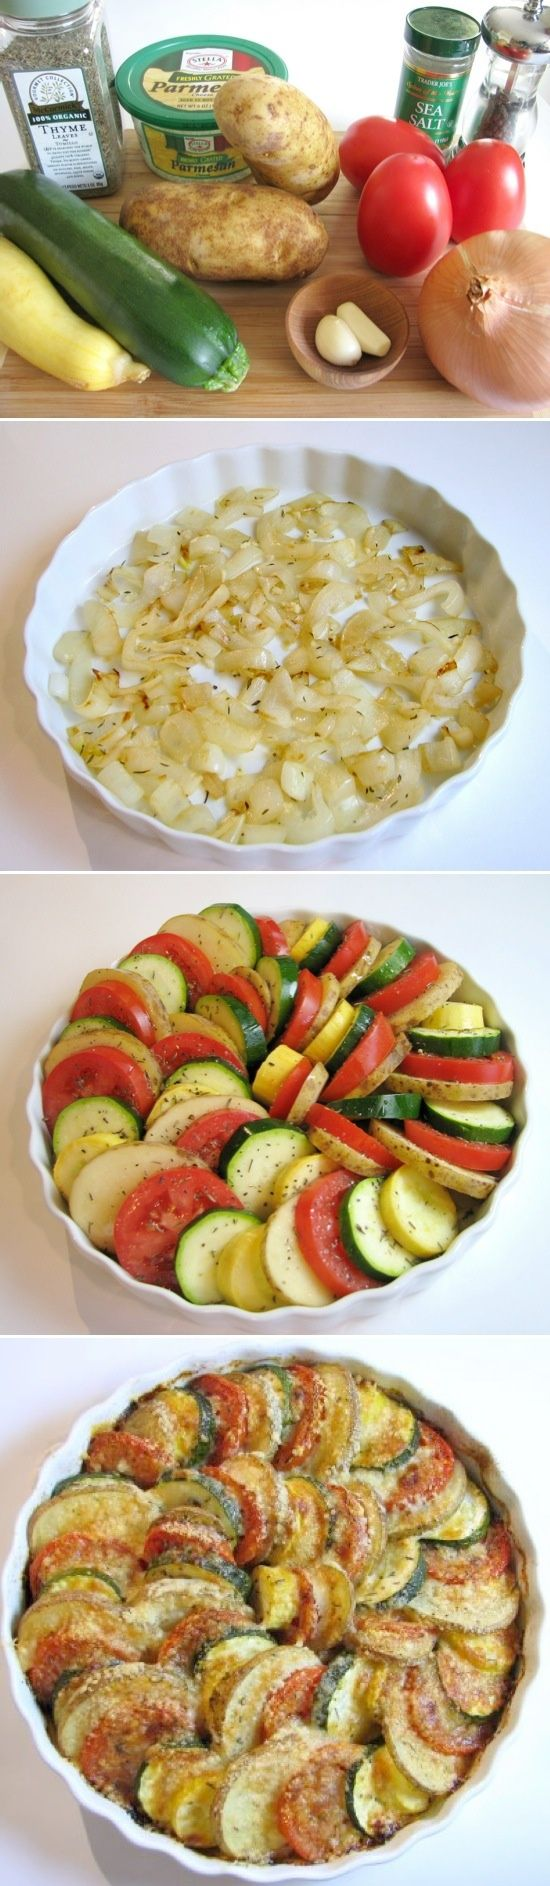 Parmesan Vegetable Spiral: a bed of onions is topped by a medley of veggies (tomatoes, potatoes, squash & zucchini) then drizzled with oil, sprinkled with Parmesan cheese, & roasted.